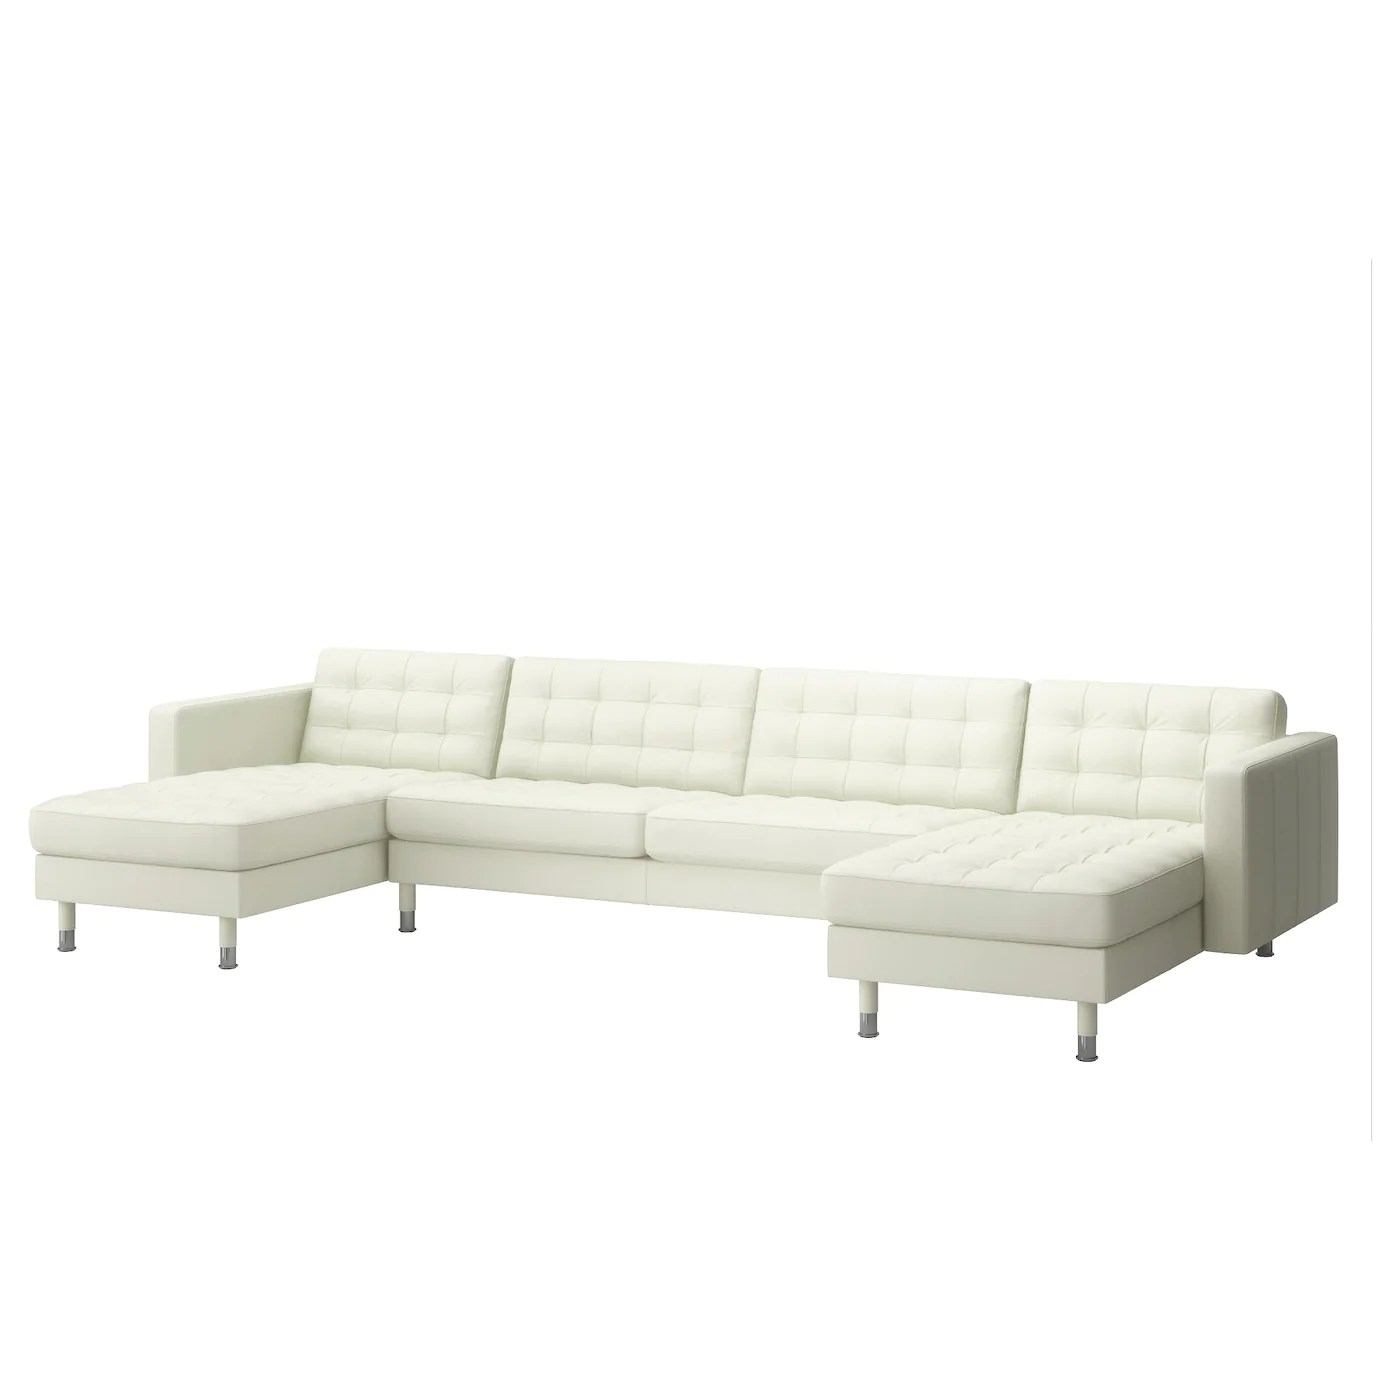 Ikea Landskrona Sofa Landskrona 5 Seat Sofa With Chaise Longues Grann Bomstad